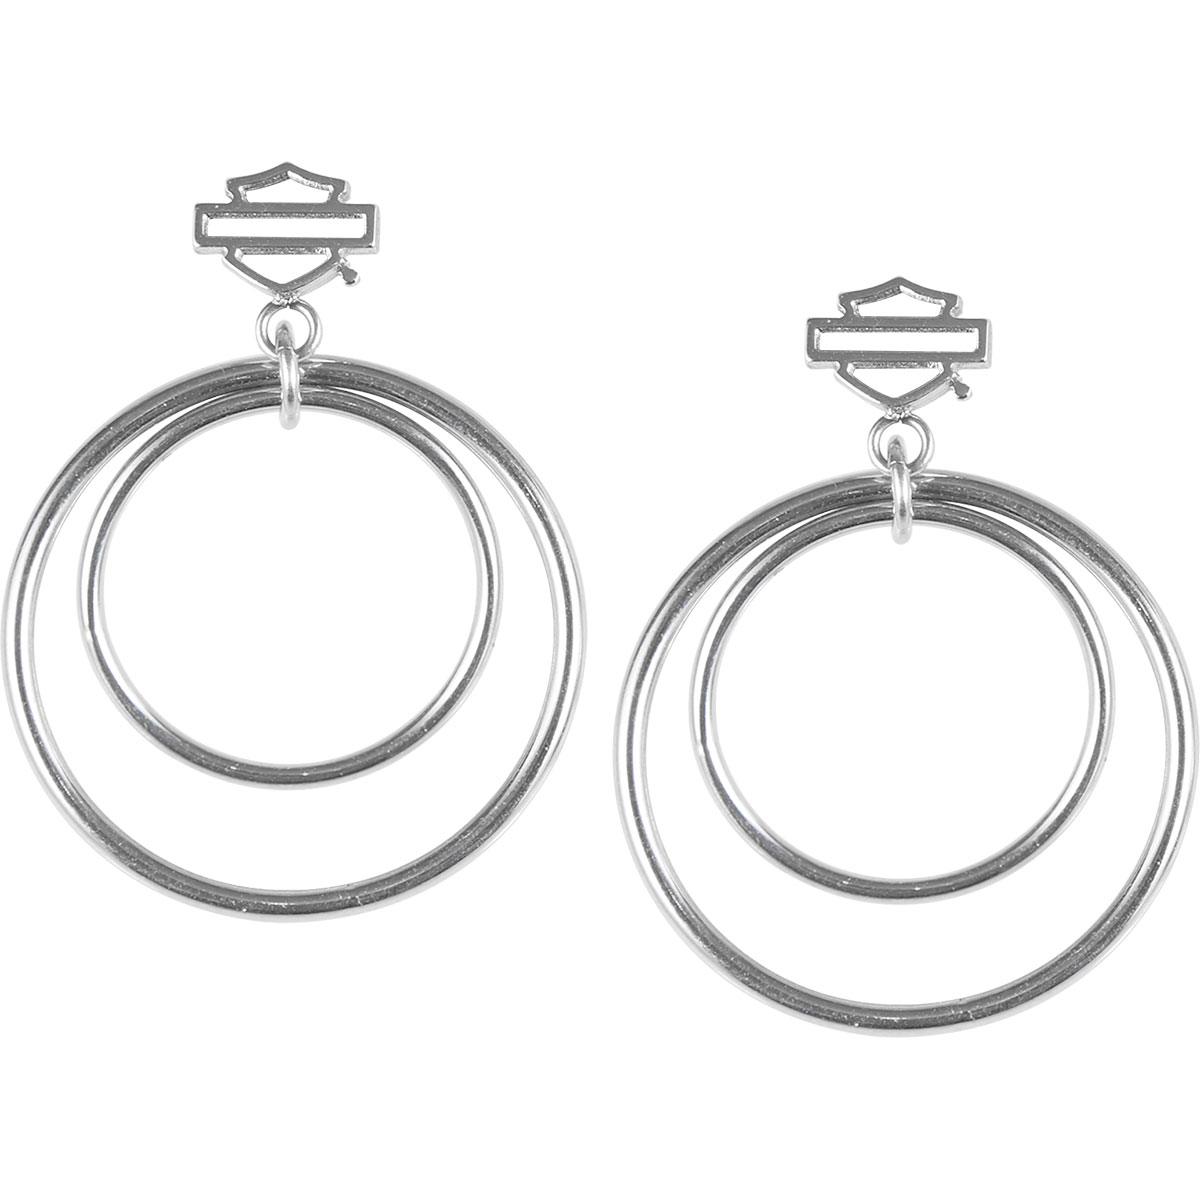 HARLEY DAVIDSON SMALL SILVER TONE DOUBLE CIRCLE POST EARRINGS